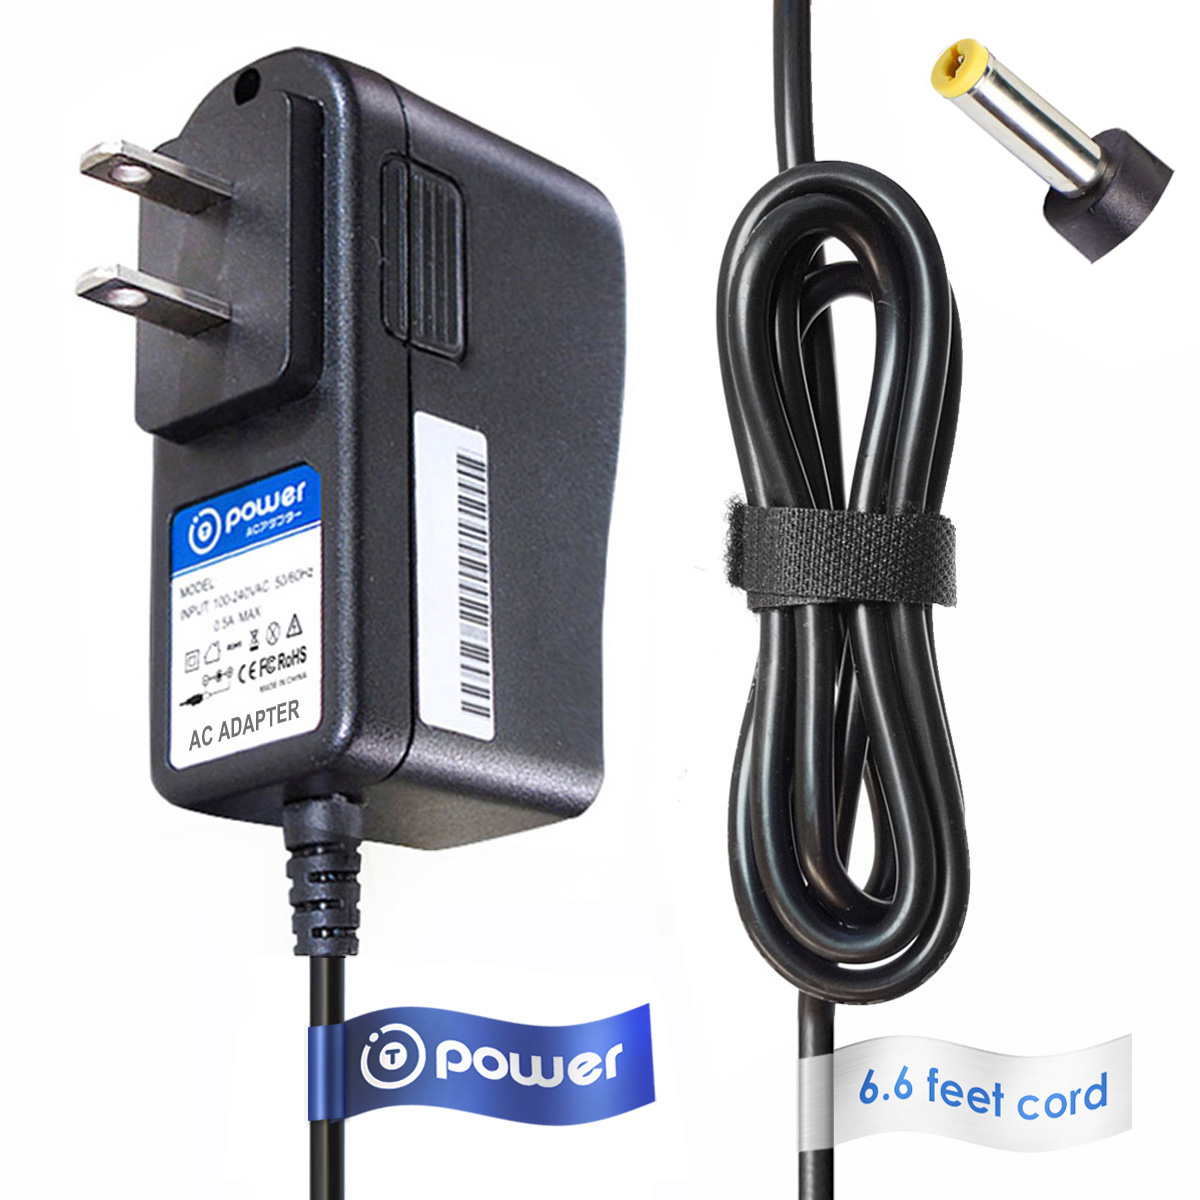 T-Power (6.6ft Long Cable) AC/DC AC adapter Charger for Kodak EasyShare Video Digital Pocket Camera P712 P880 V1003 V1073 V1233 V1253 V1273 V530 V550 V570 V603 V610 V705 V803 Z1015 Is Z730 Z7590 Z760